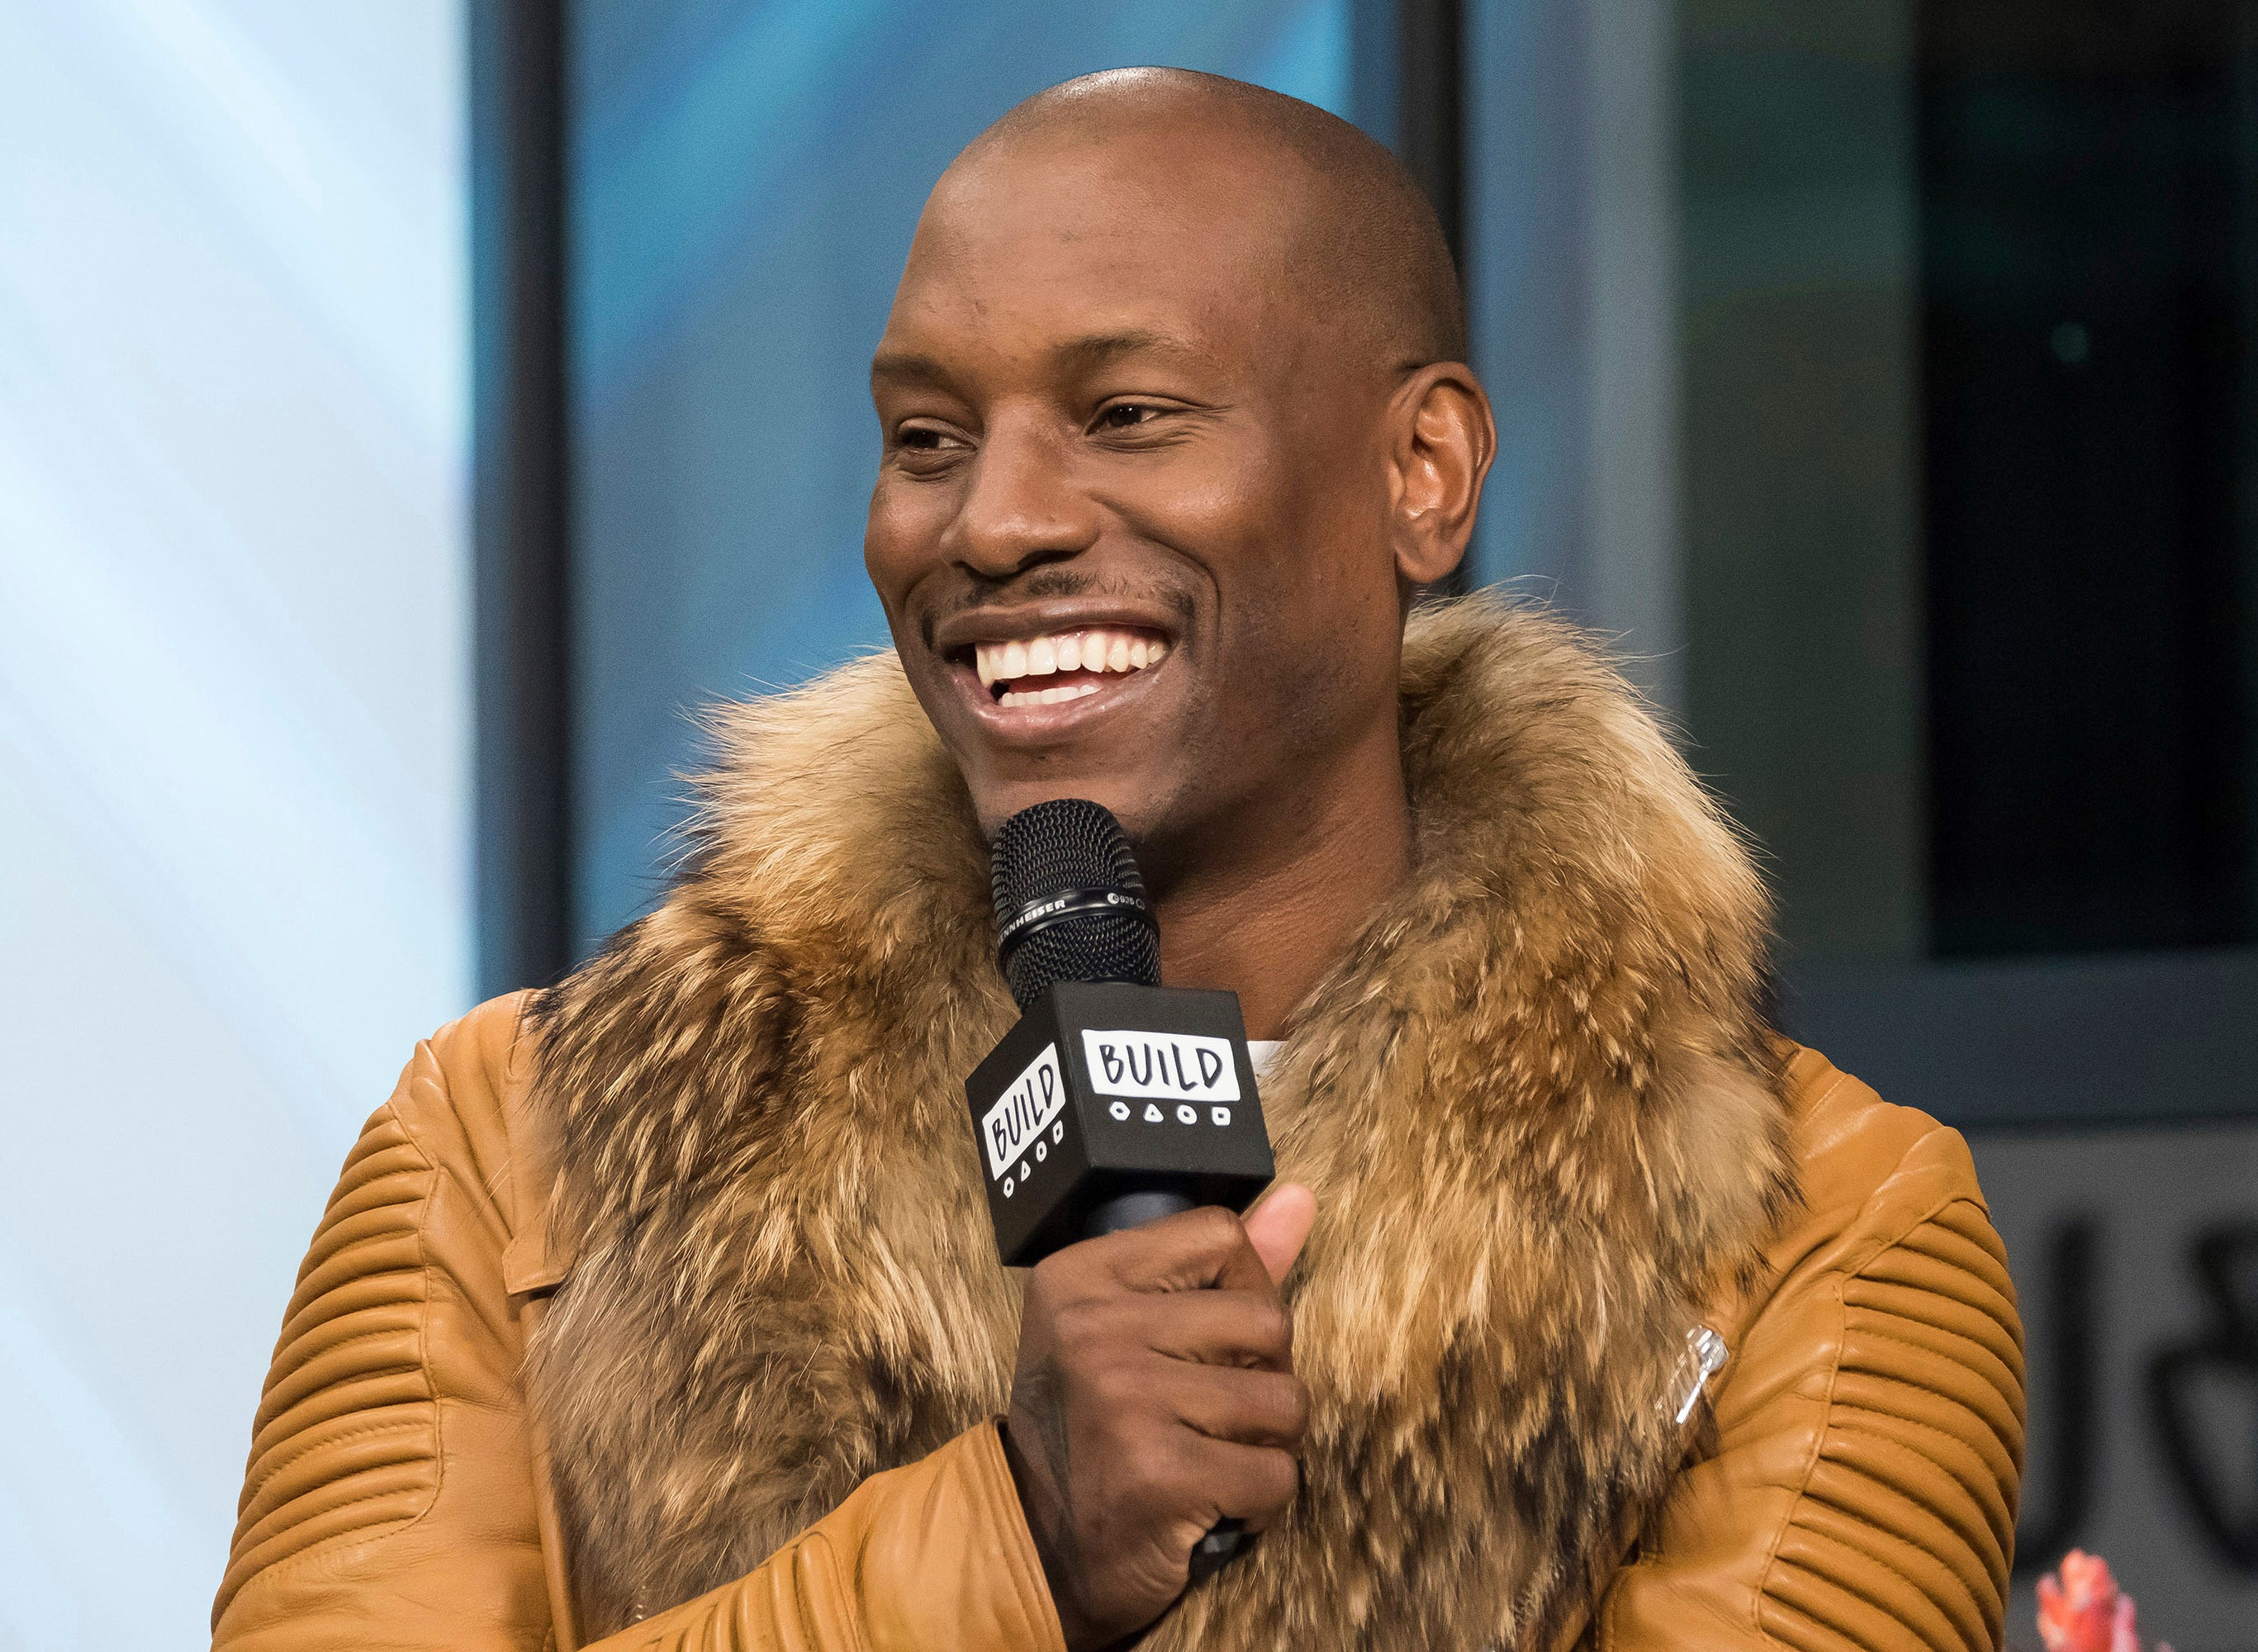 Tyrese on his recent behavior: Antidepressant messed me up